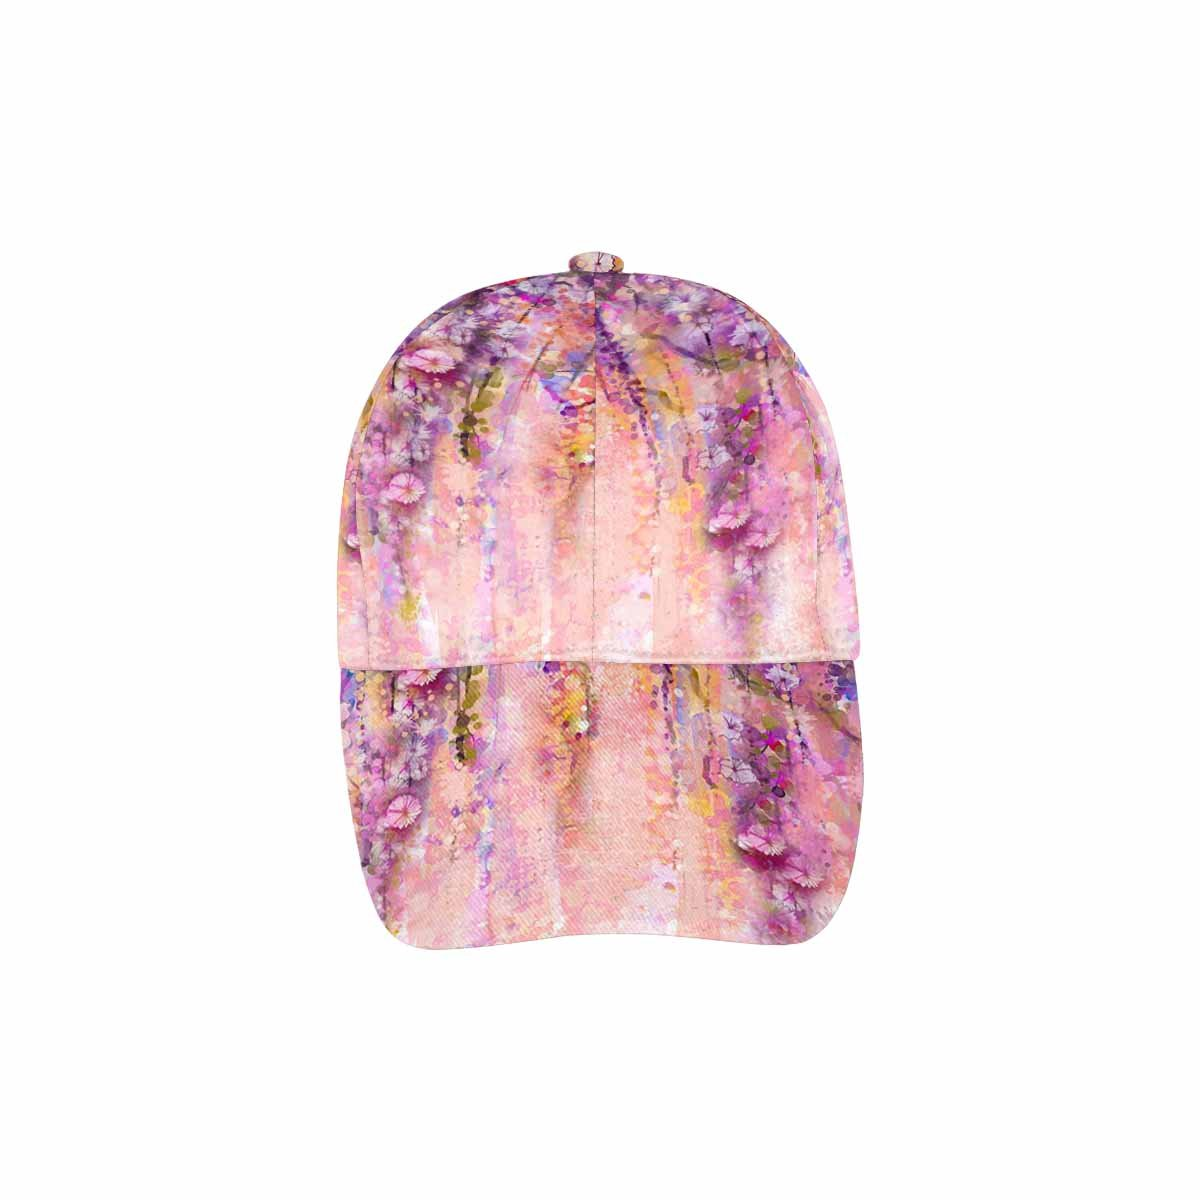 InterestPrint Unisex Baseball Cap Hip Hop Adjustable Hat Spring Purple Flowers Wisteria Bokeh Background